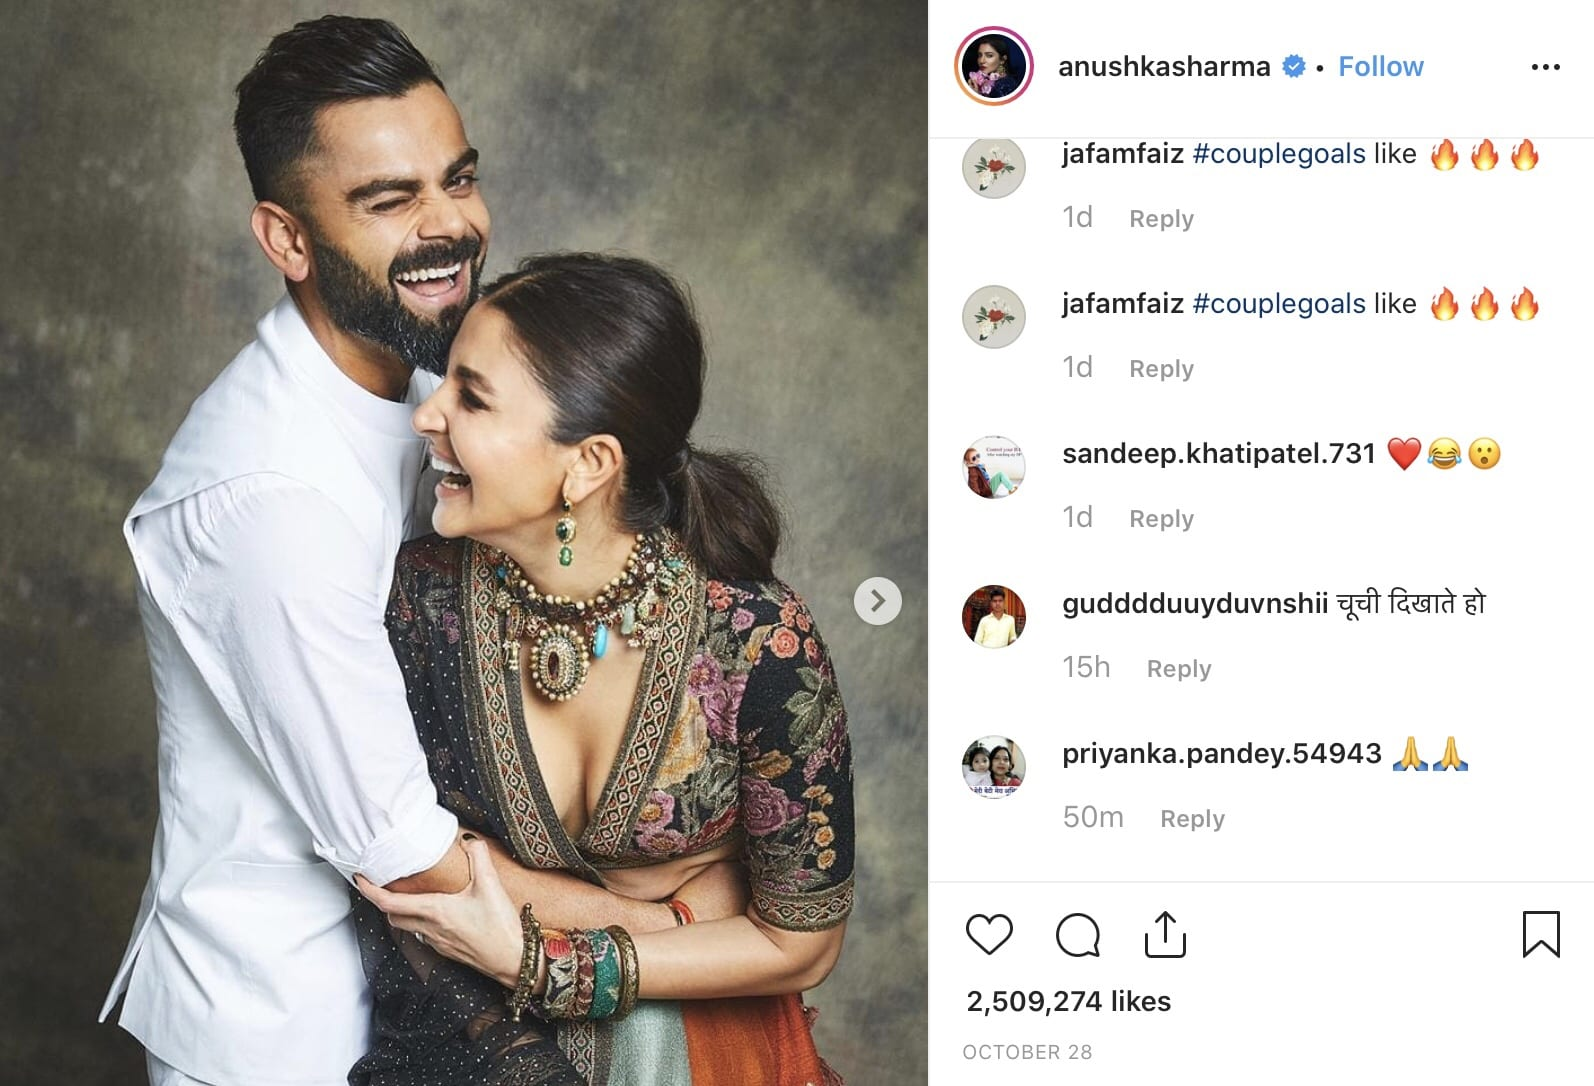 Anushka Sharma with husband Virat Kohli